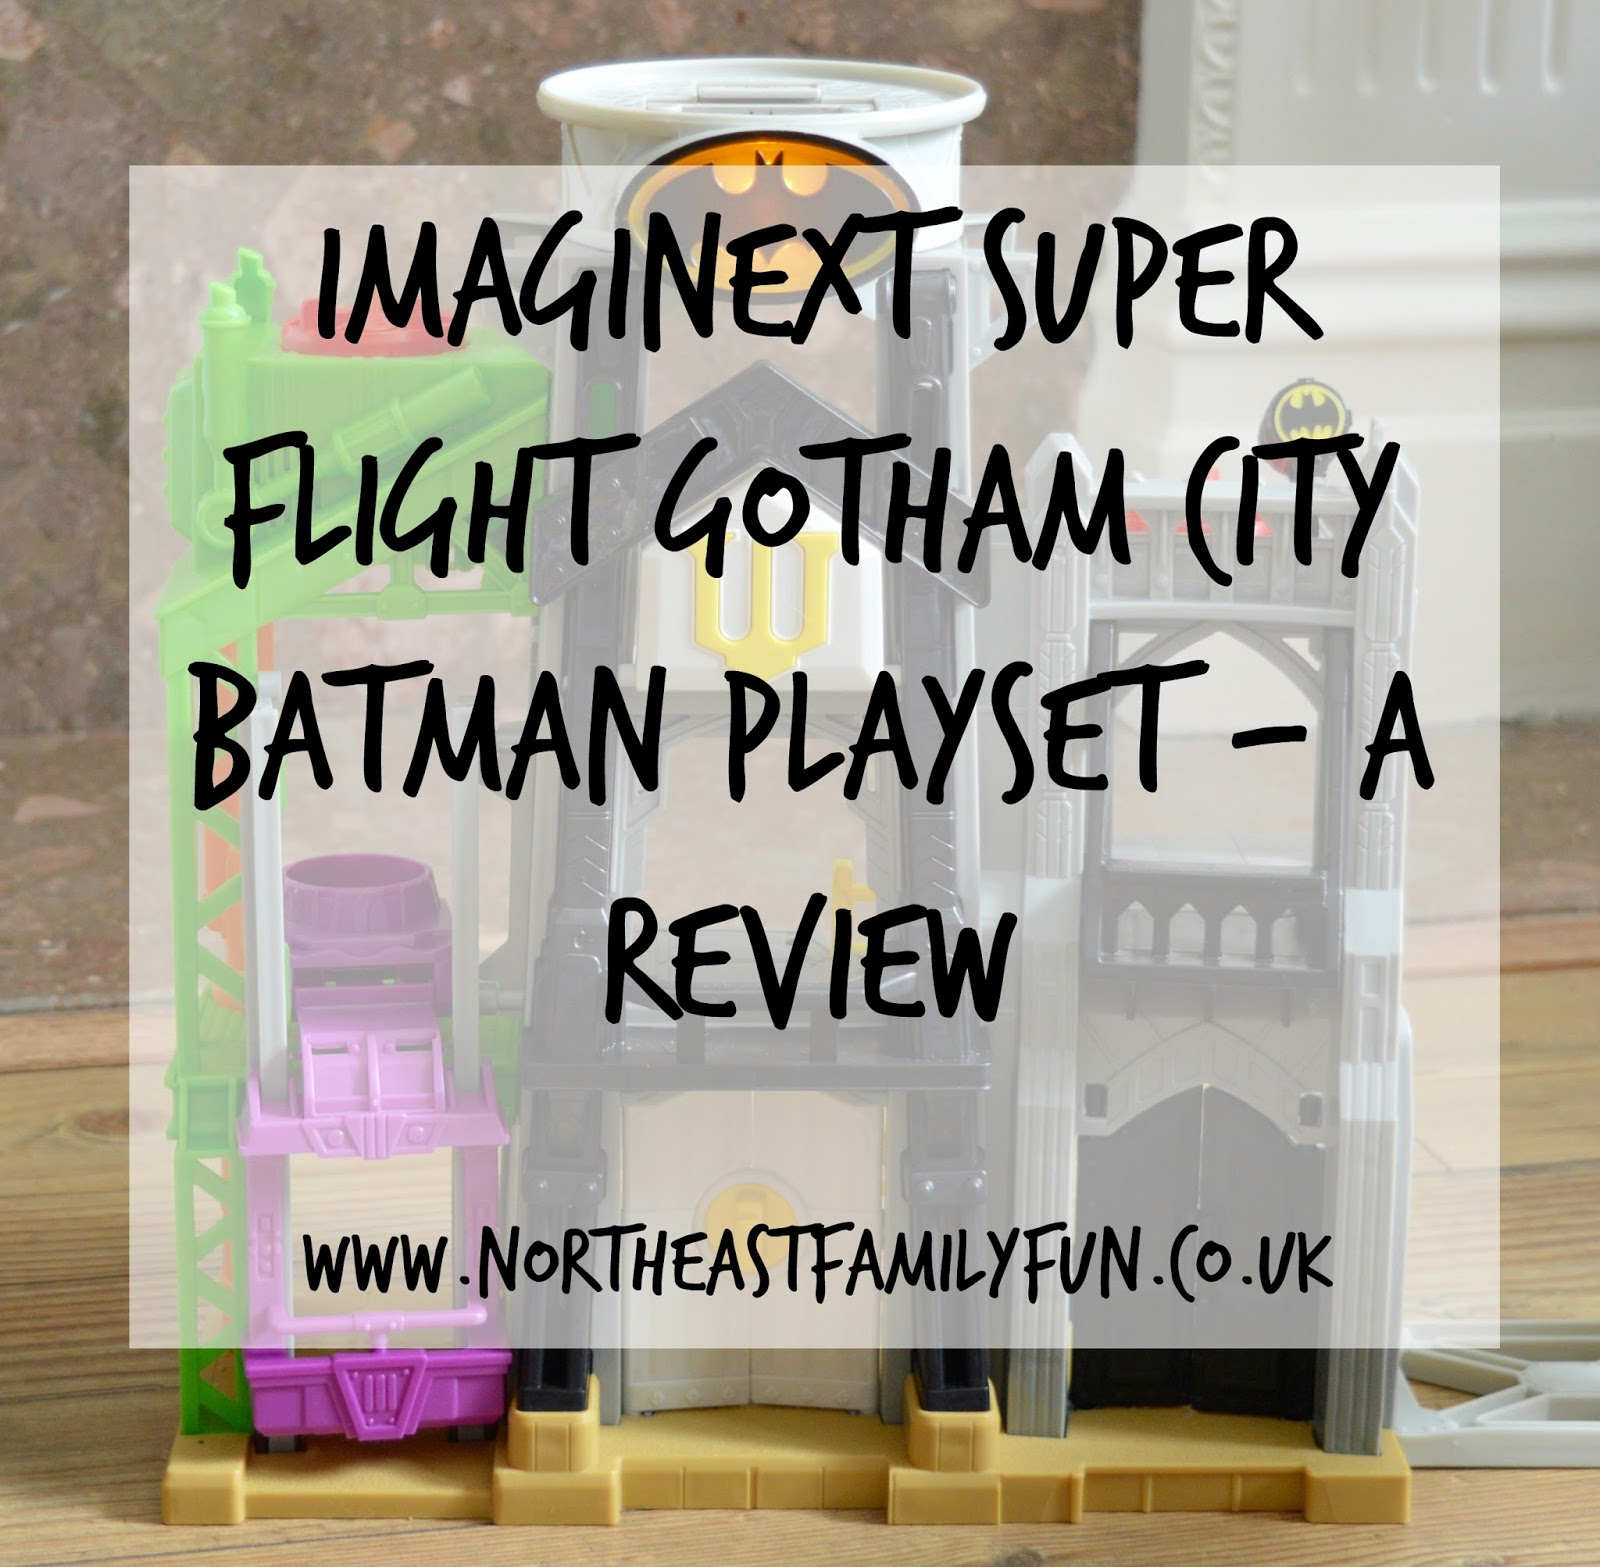 Fisher-Price Imaginext Super-Flight Gotham City | Batman Playset - A Review